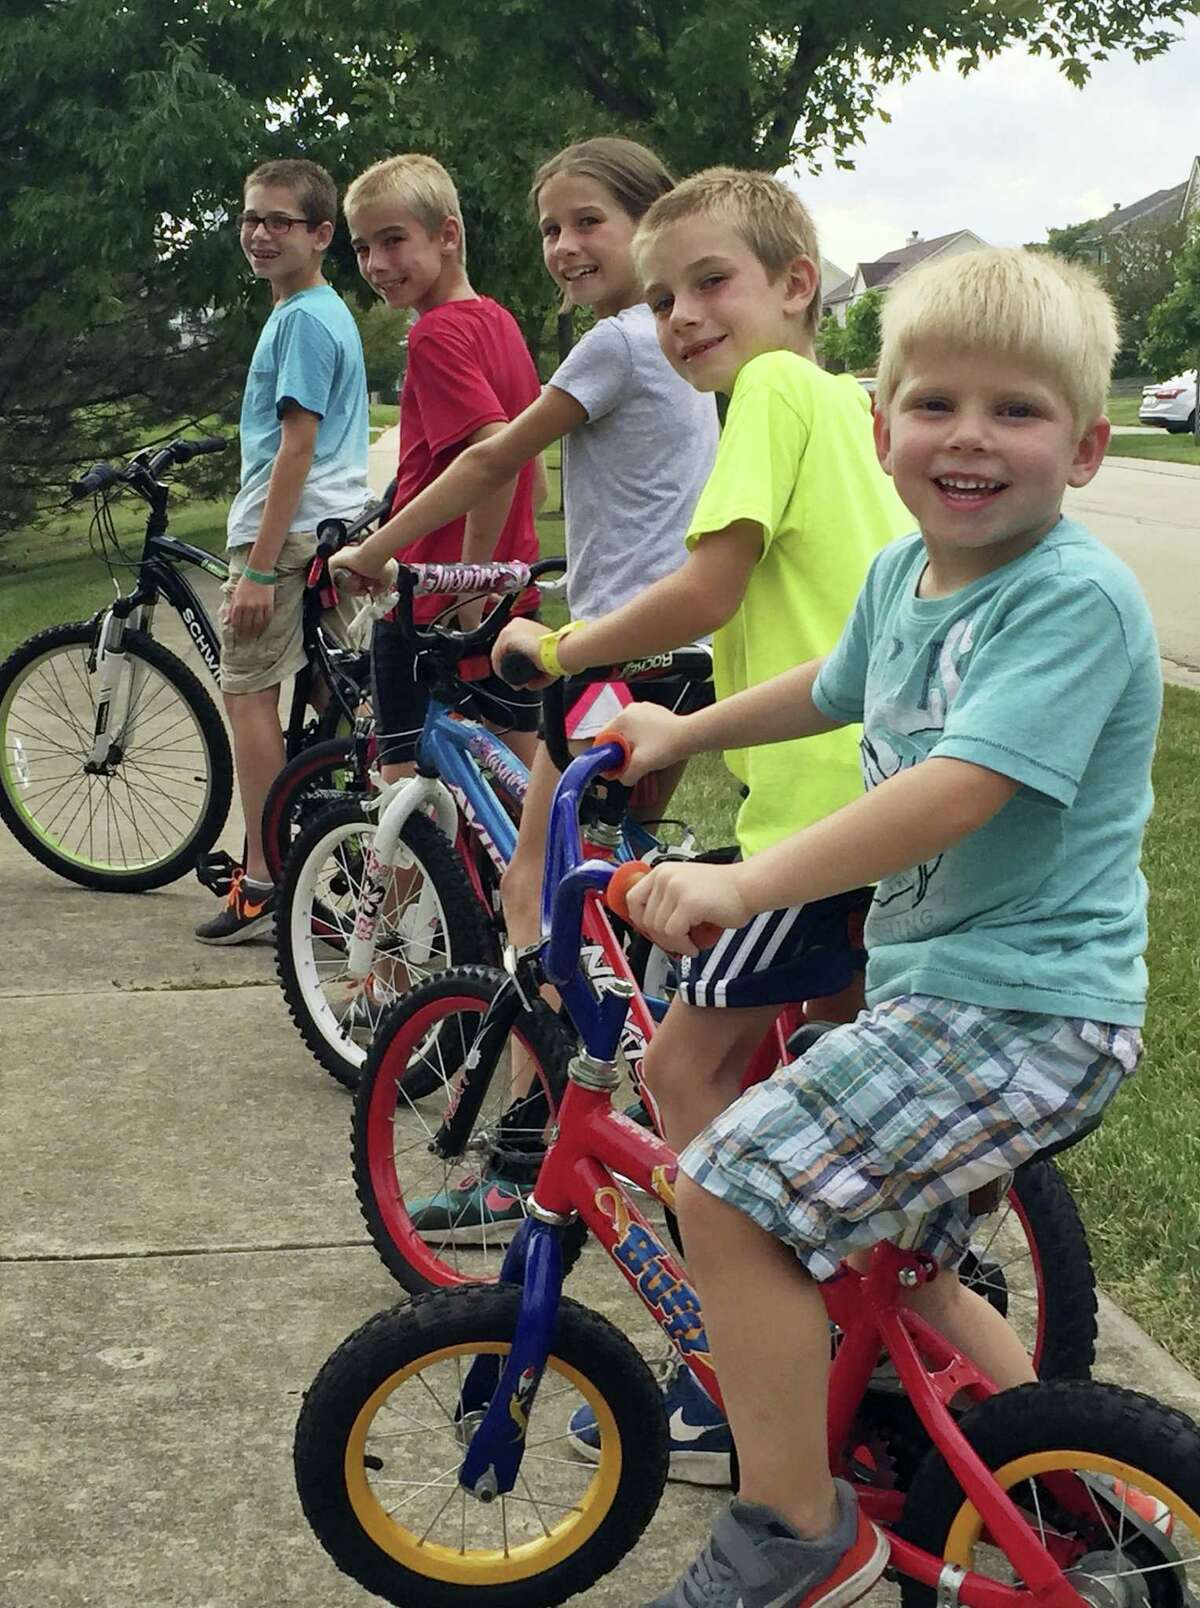 """ADVANCE FOR USE SUNDAY, JUNE 18, 2017 AND THEREAFTER-This July 2017 photo provided by the family shows Kevin Neubert and Jim Gorey's adopted children, Lucas, Zach, Natalie, Jacob, and Derek in Lisle, Ill. """"Some people thought we were crazy, but everyone was supportive of keeping the kids together,"""" Neubert said. (Jim Gorey via AP)"""